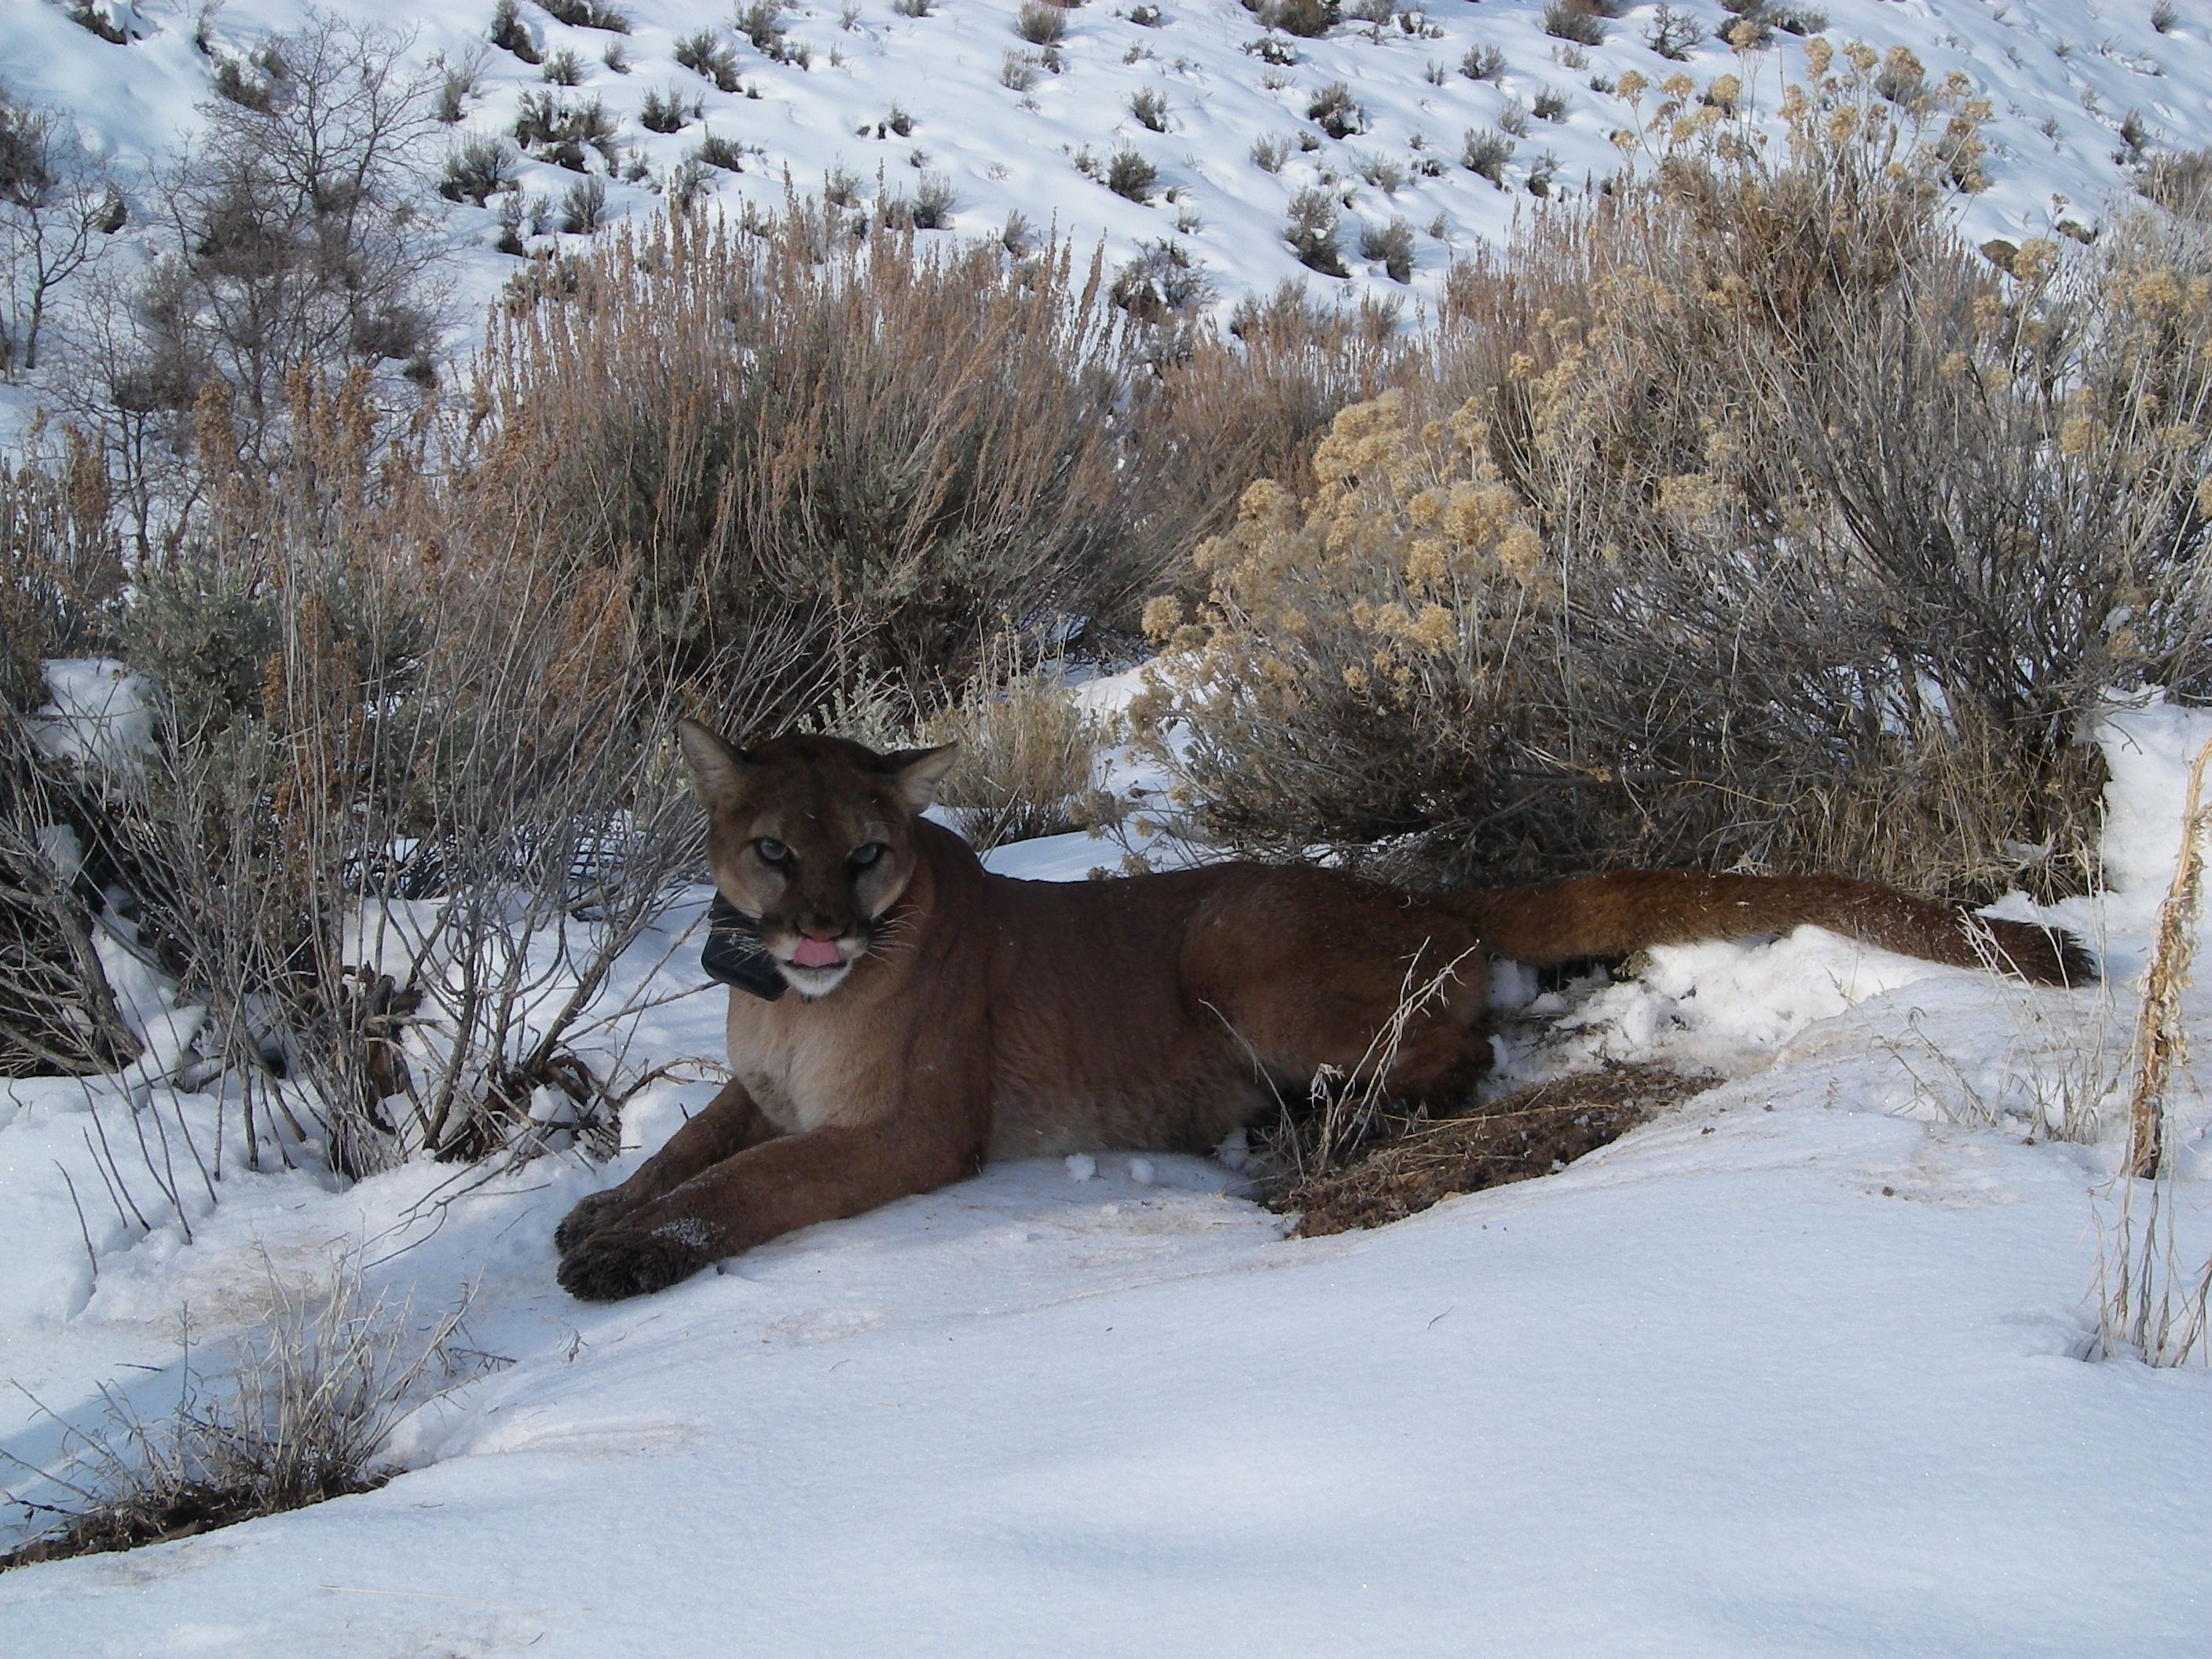 Adult female mountain lion